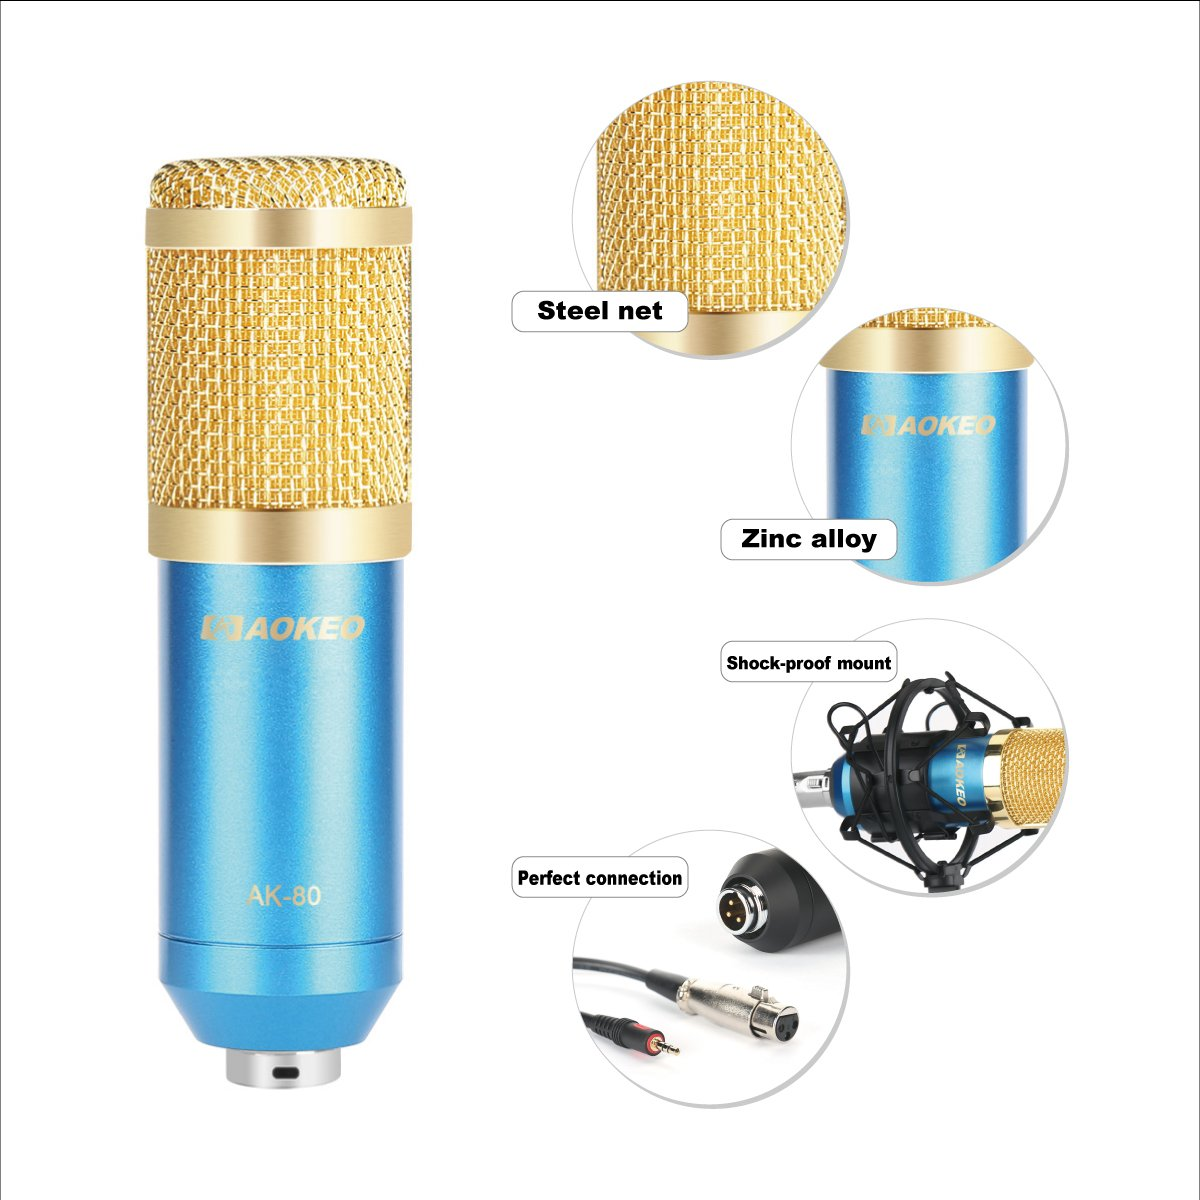 Aokeo AK-80 Professional Studio Recording Condenser Microphone Plug and Play Mic, Cardioid Pickup, Compatible Phone, Computer, Laptop,Youtube, Podcasting,Twitch, Skype,MSN,Gaming,Singing (Blue)